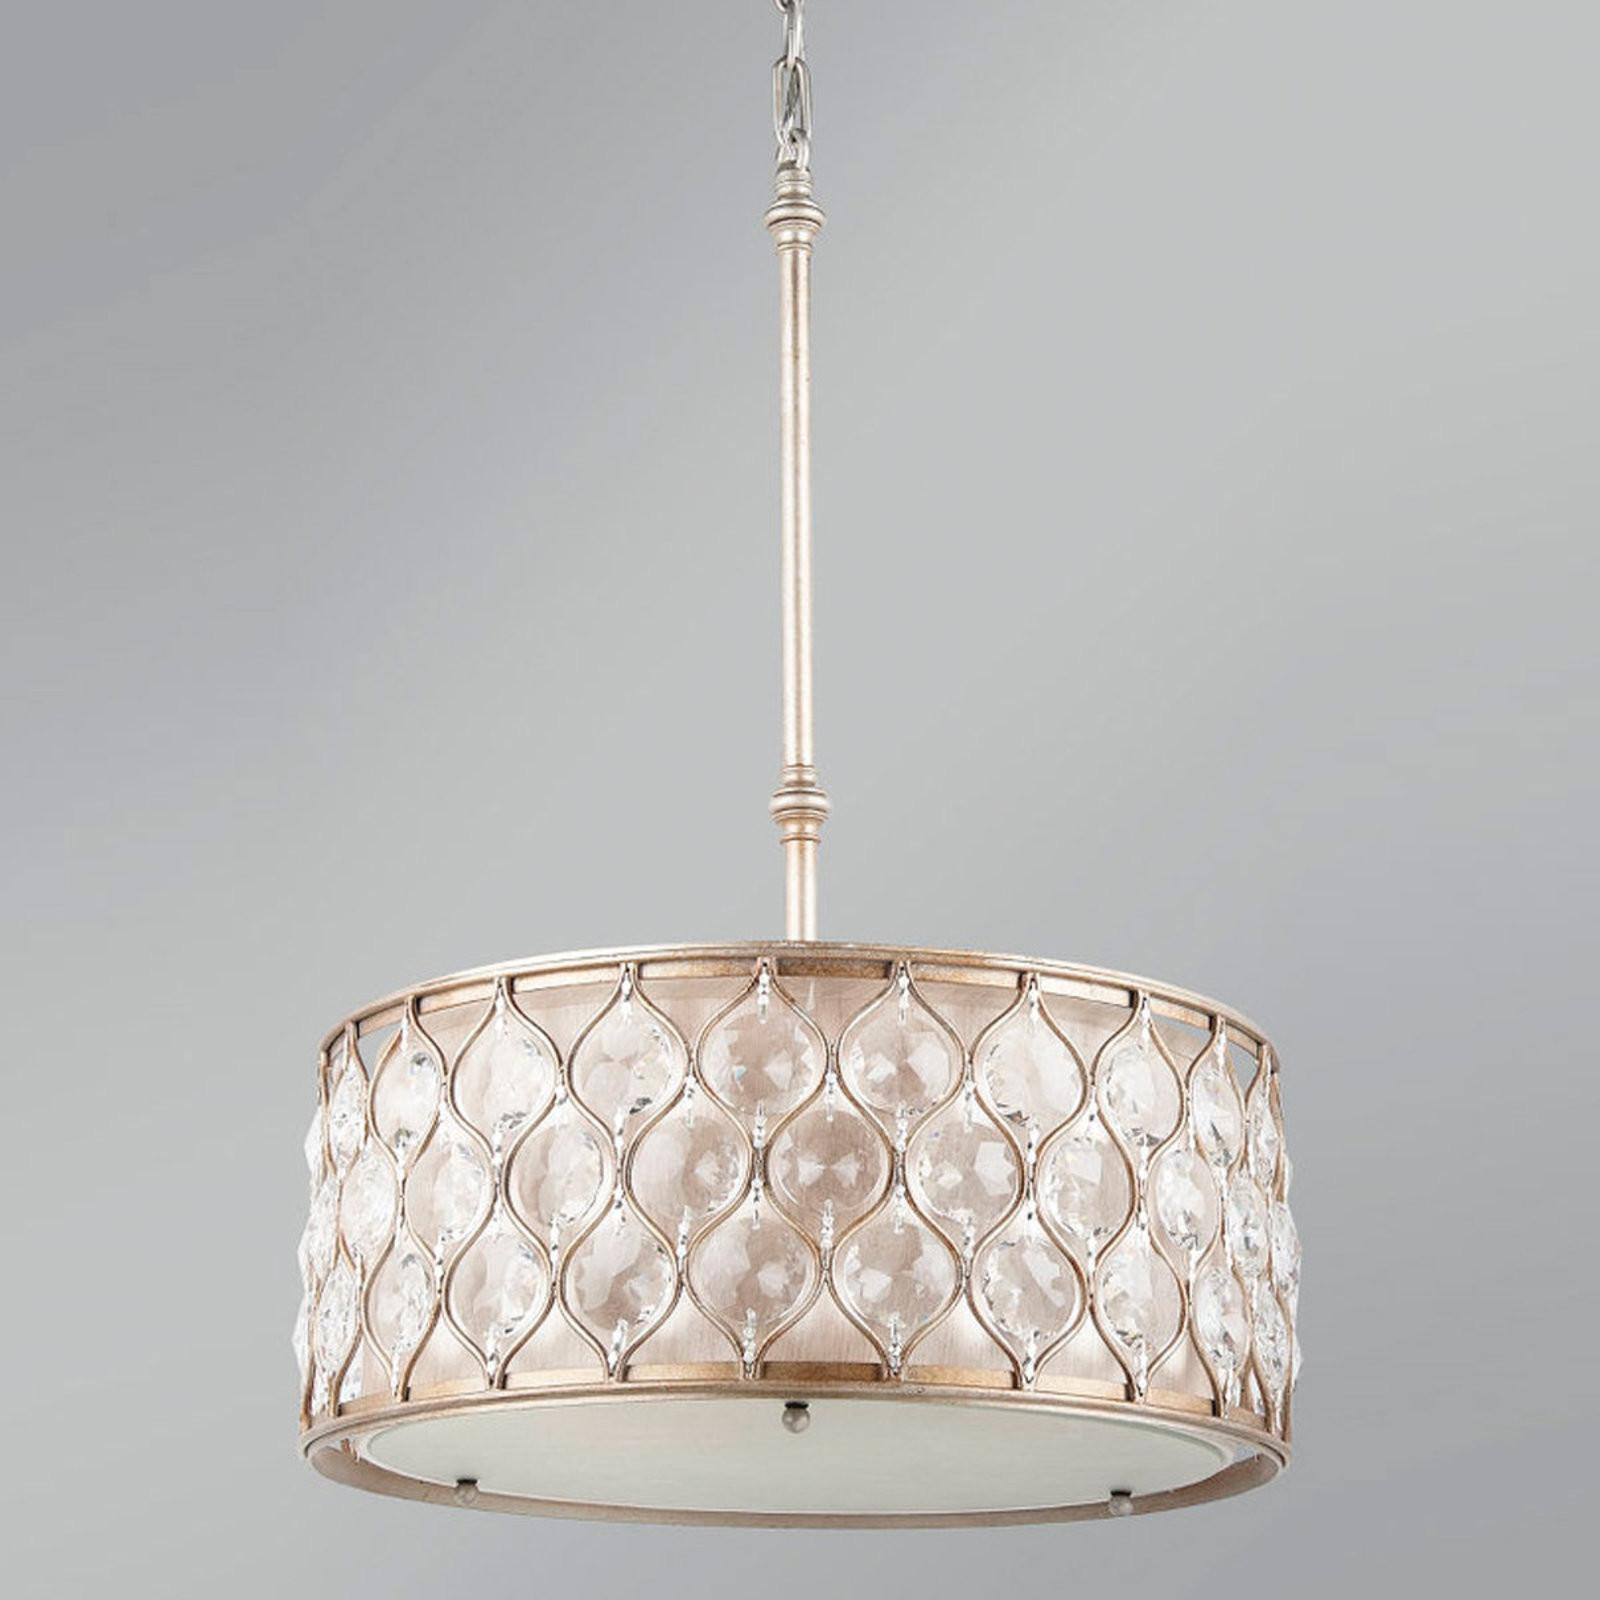 Hourglass Crystal Drum Pendant Shades Light